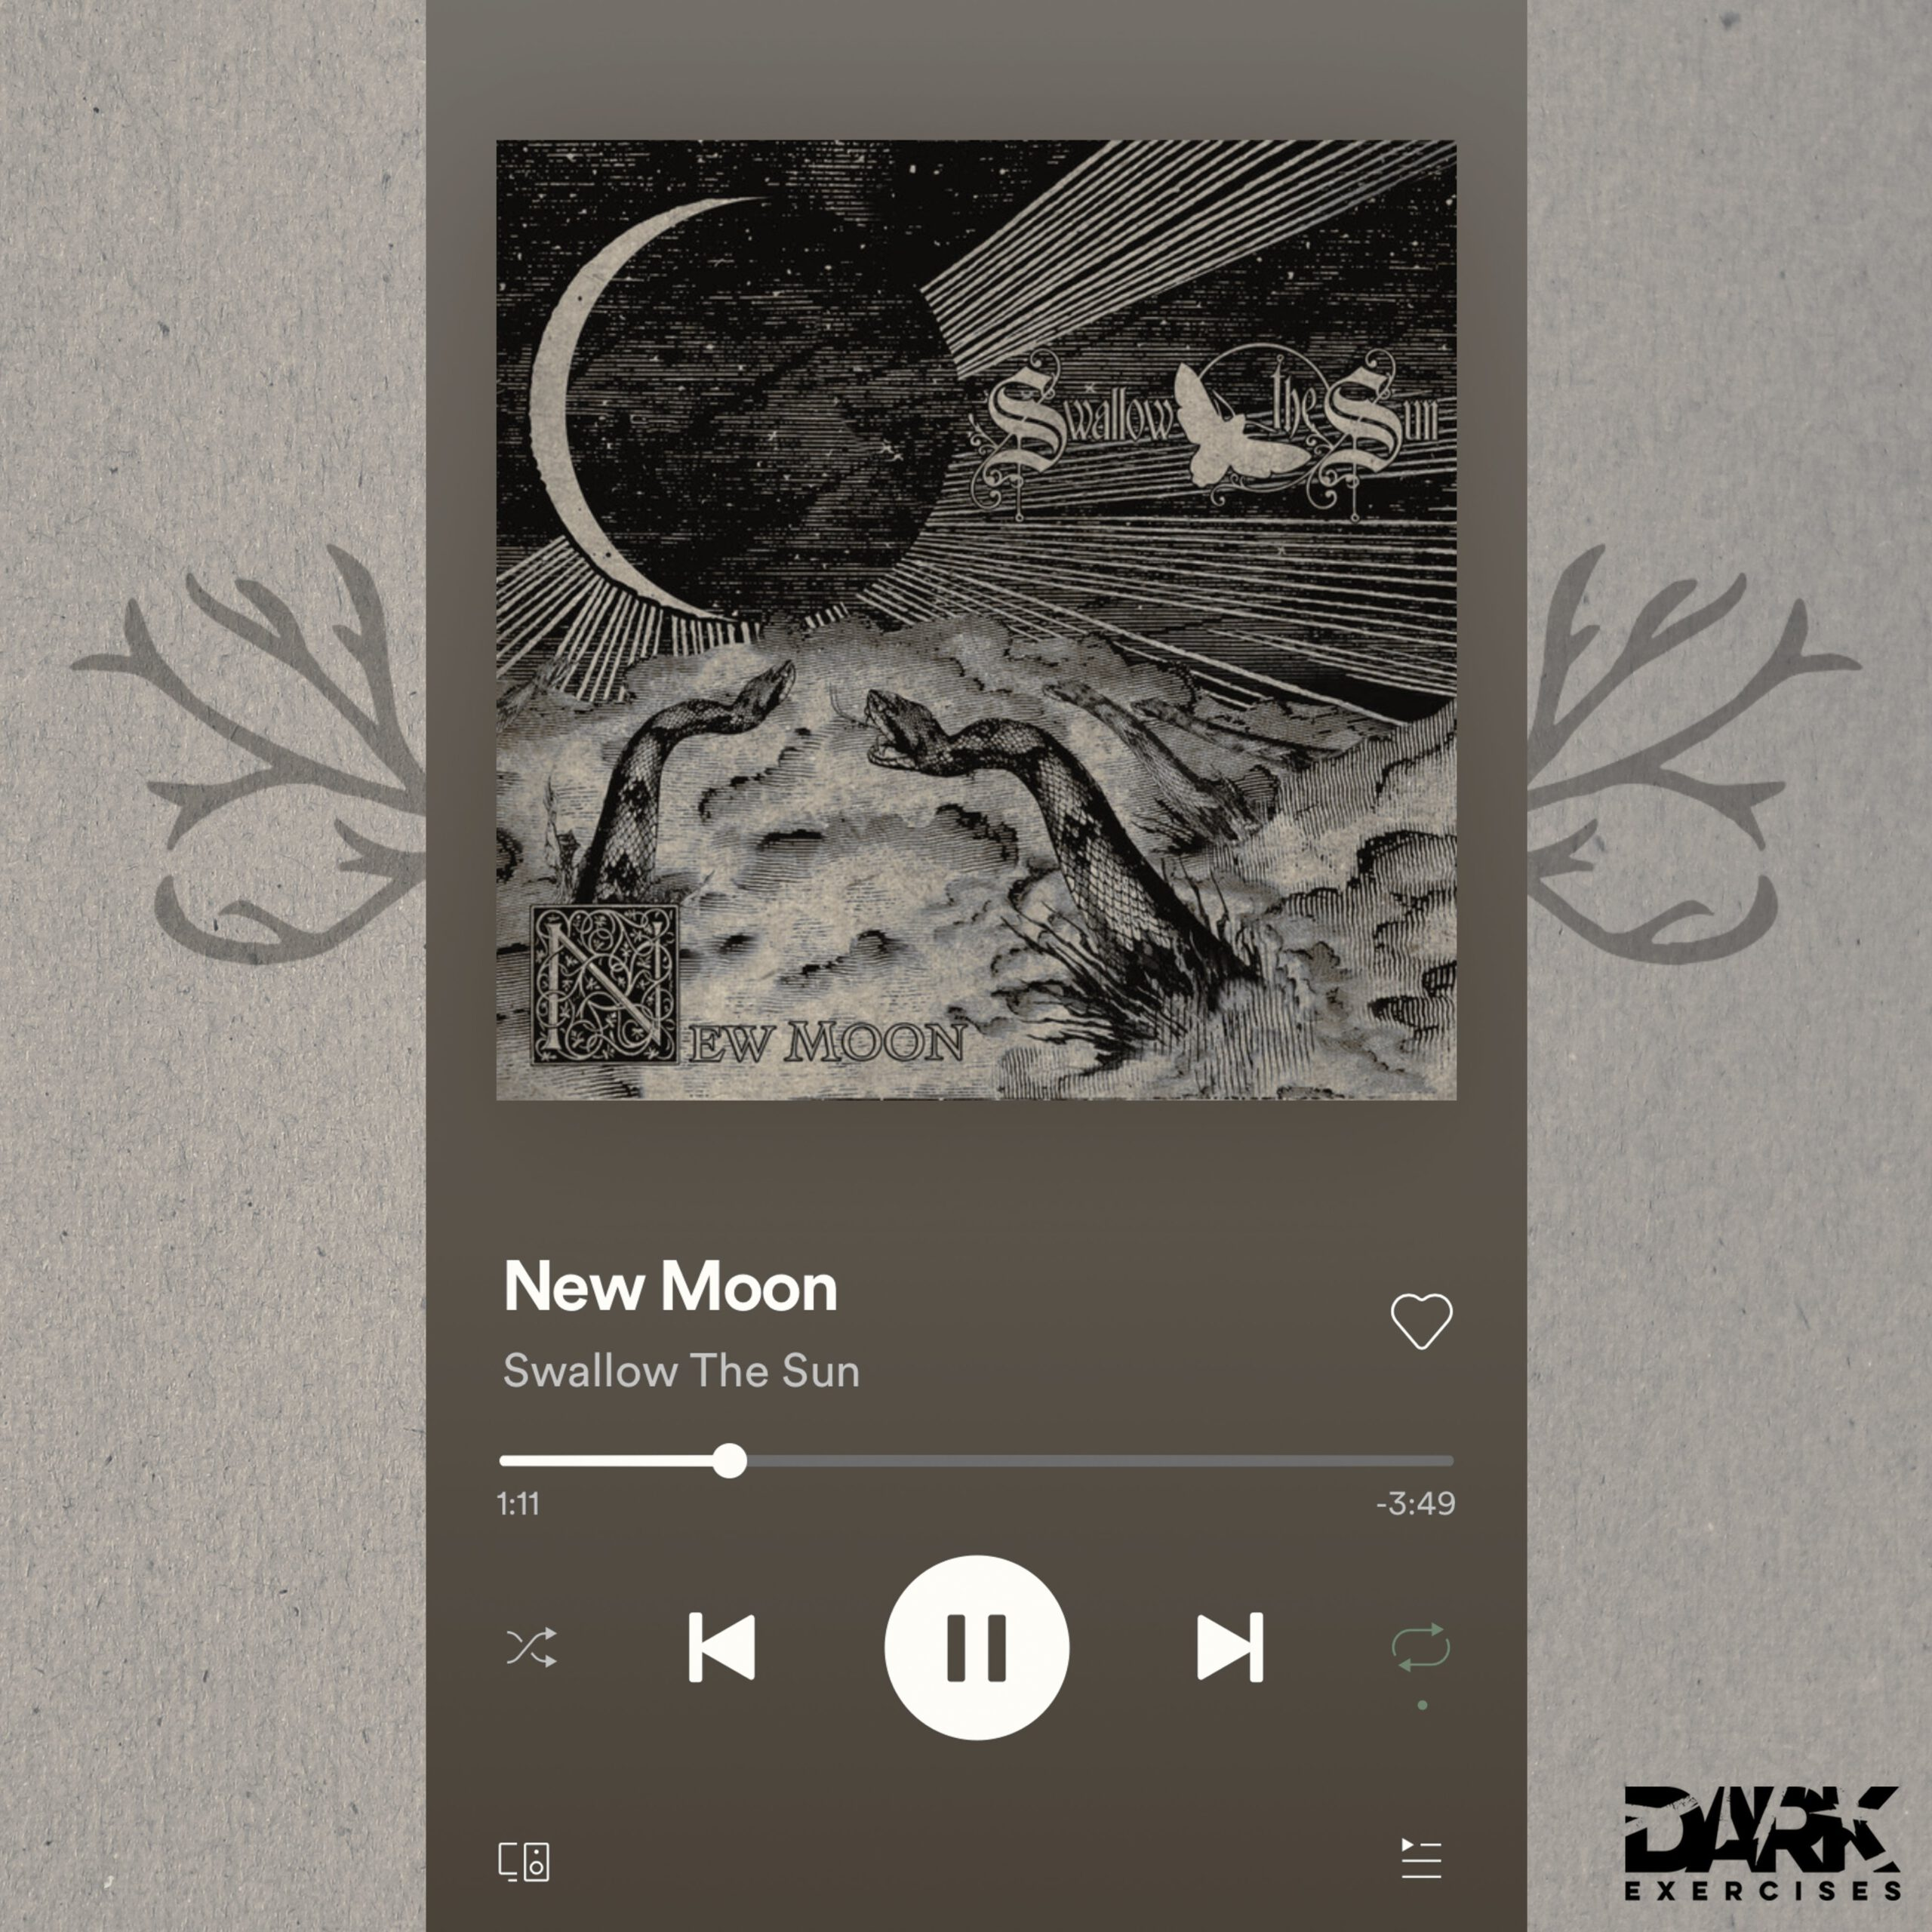 Song New Moon - Swallow the Sun